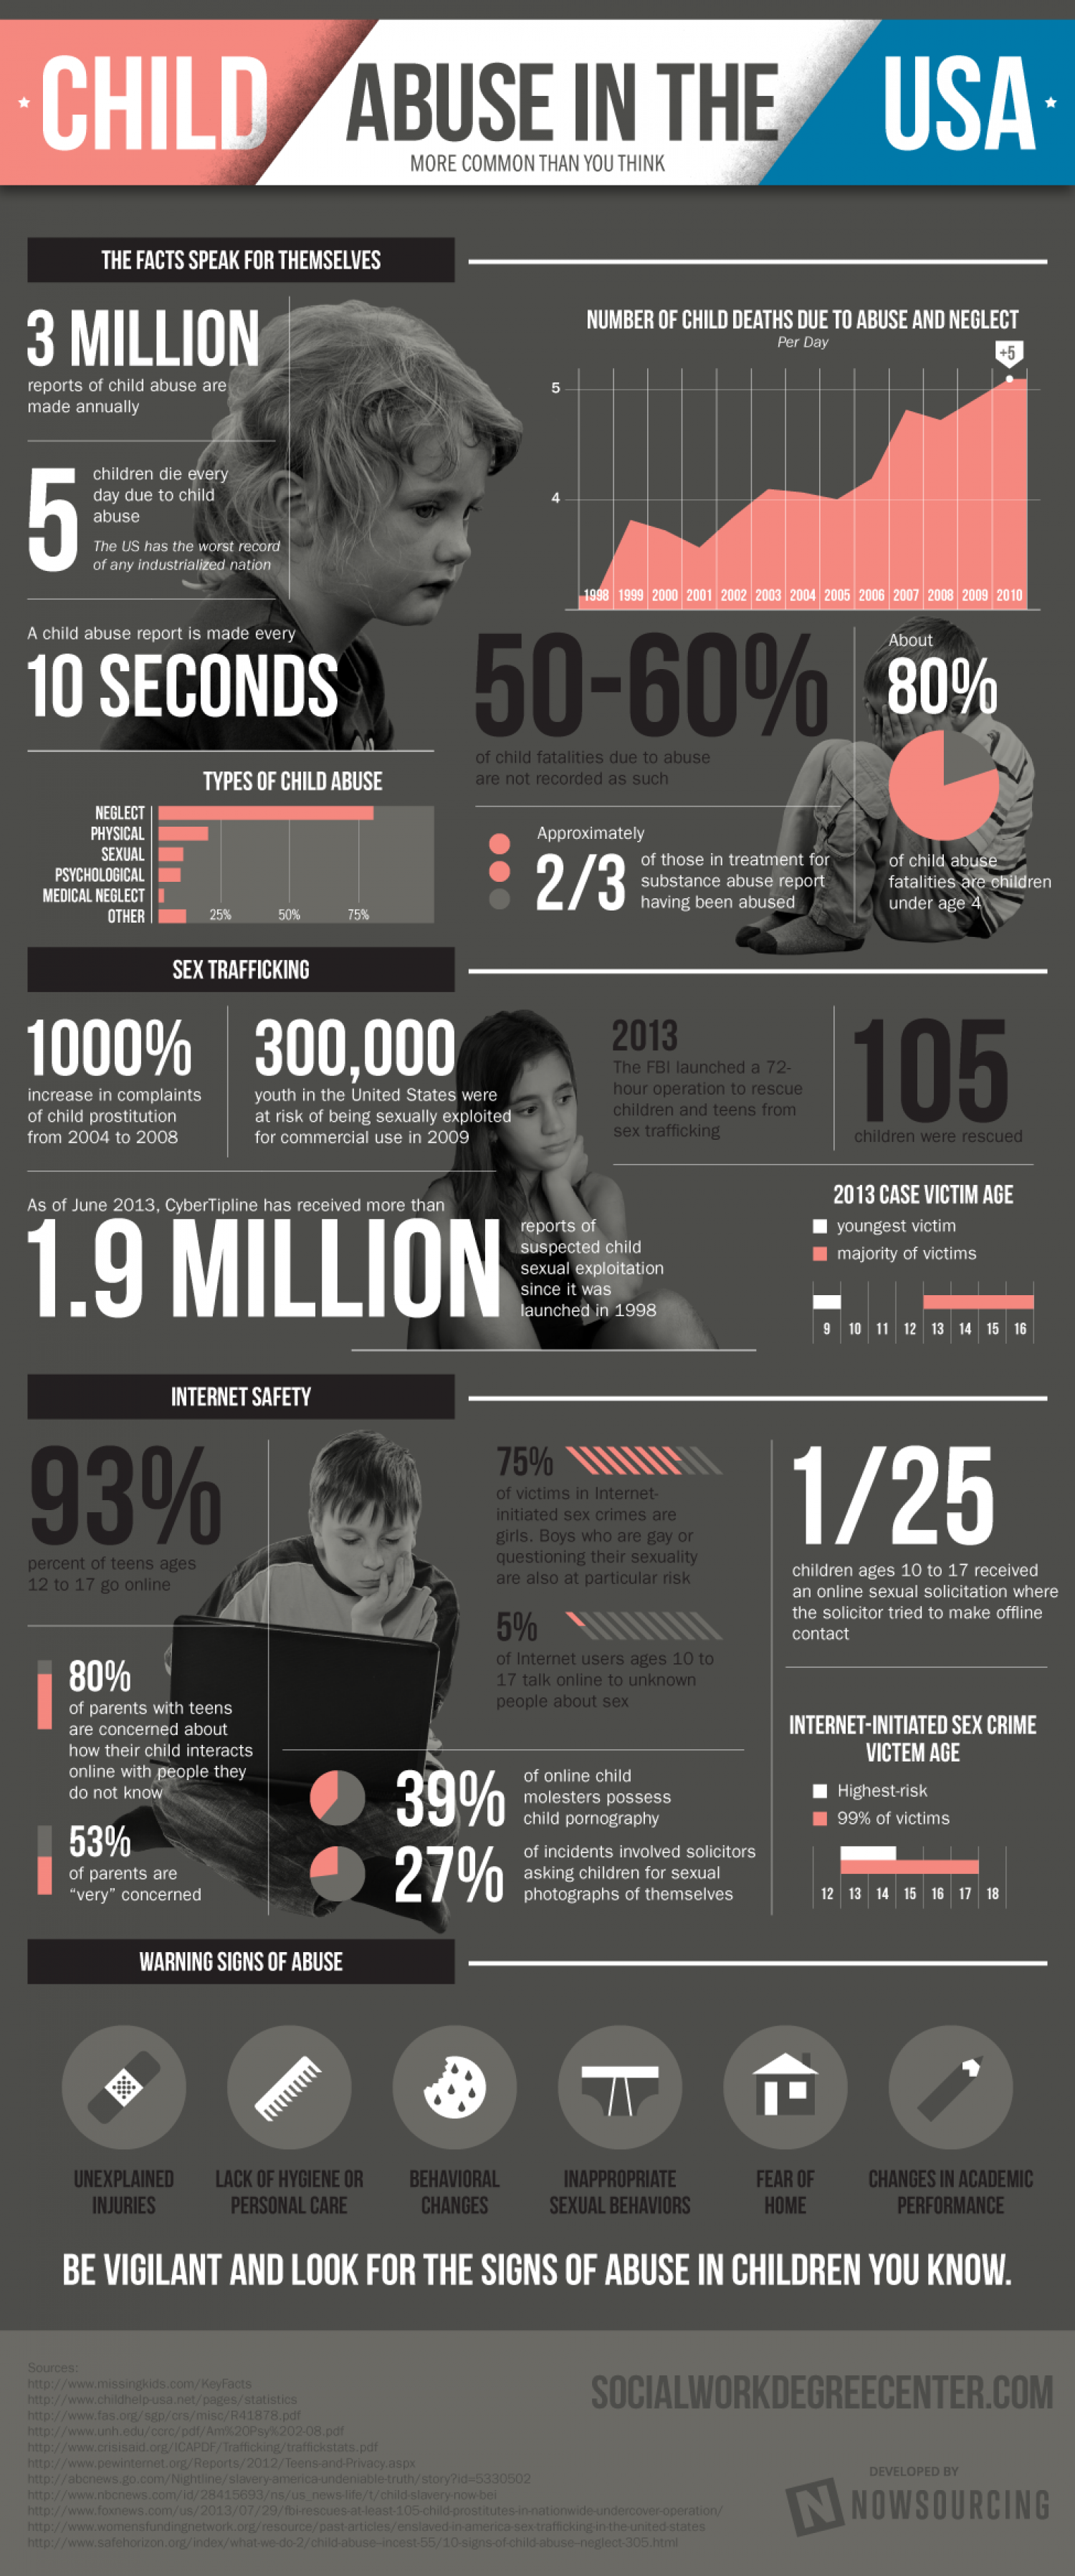 Child Abuse in the USA Infographic